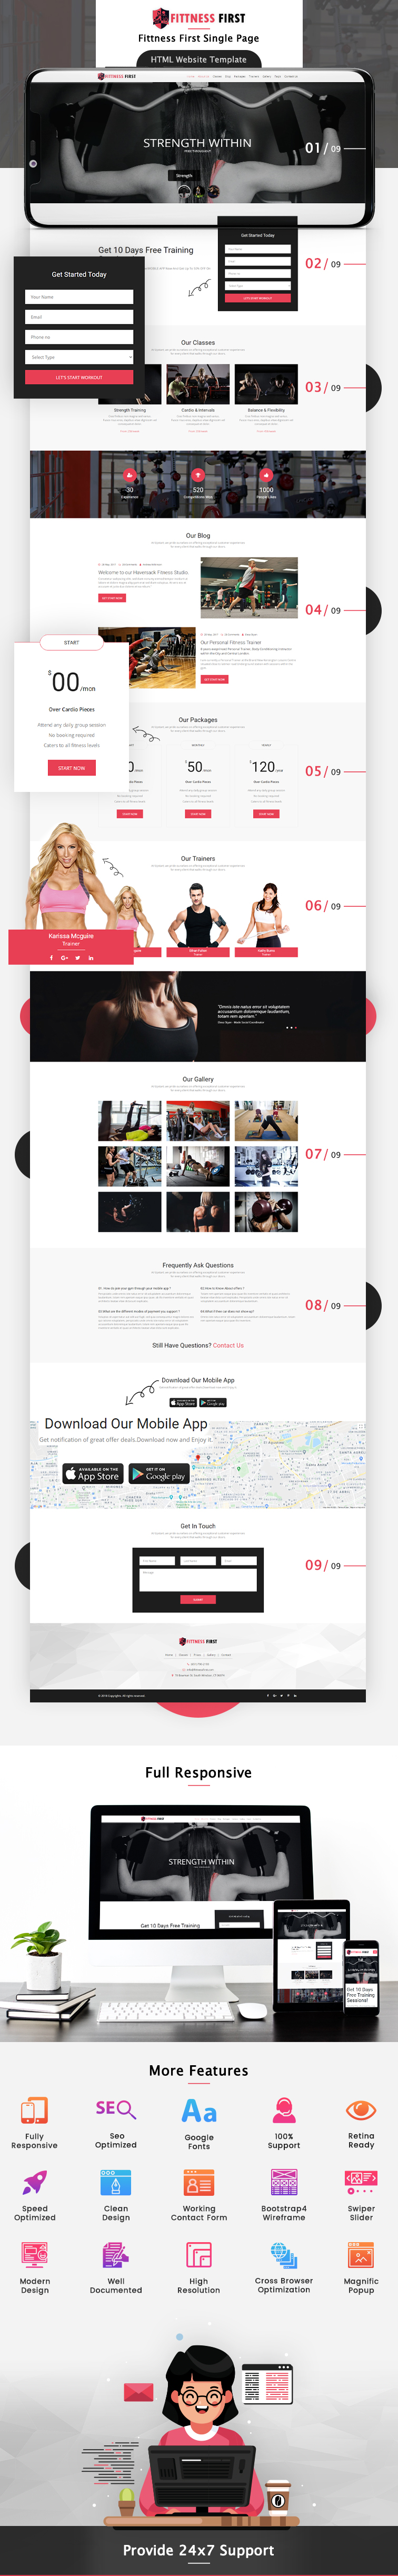 Fitness First Single Page HTML Website Template